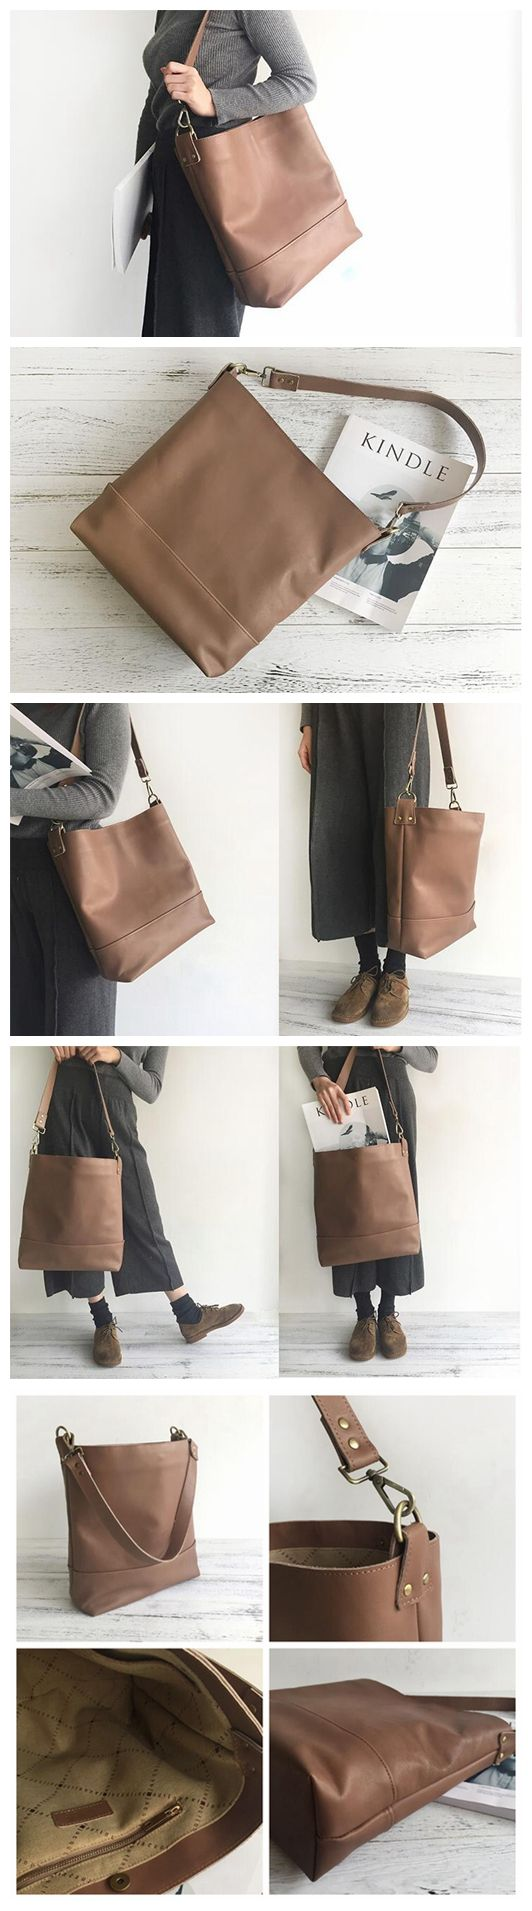 Handmade Top Grain Leather Tote Bag Women's Fashion Handbag Leather Shoulder Bag 16007